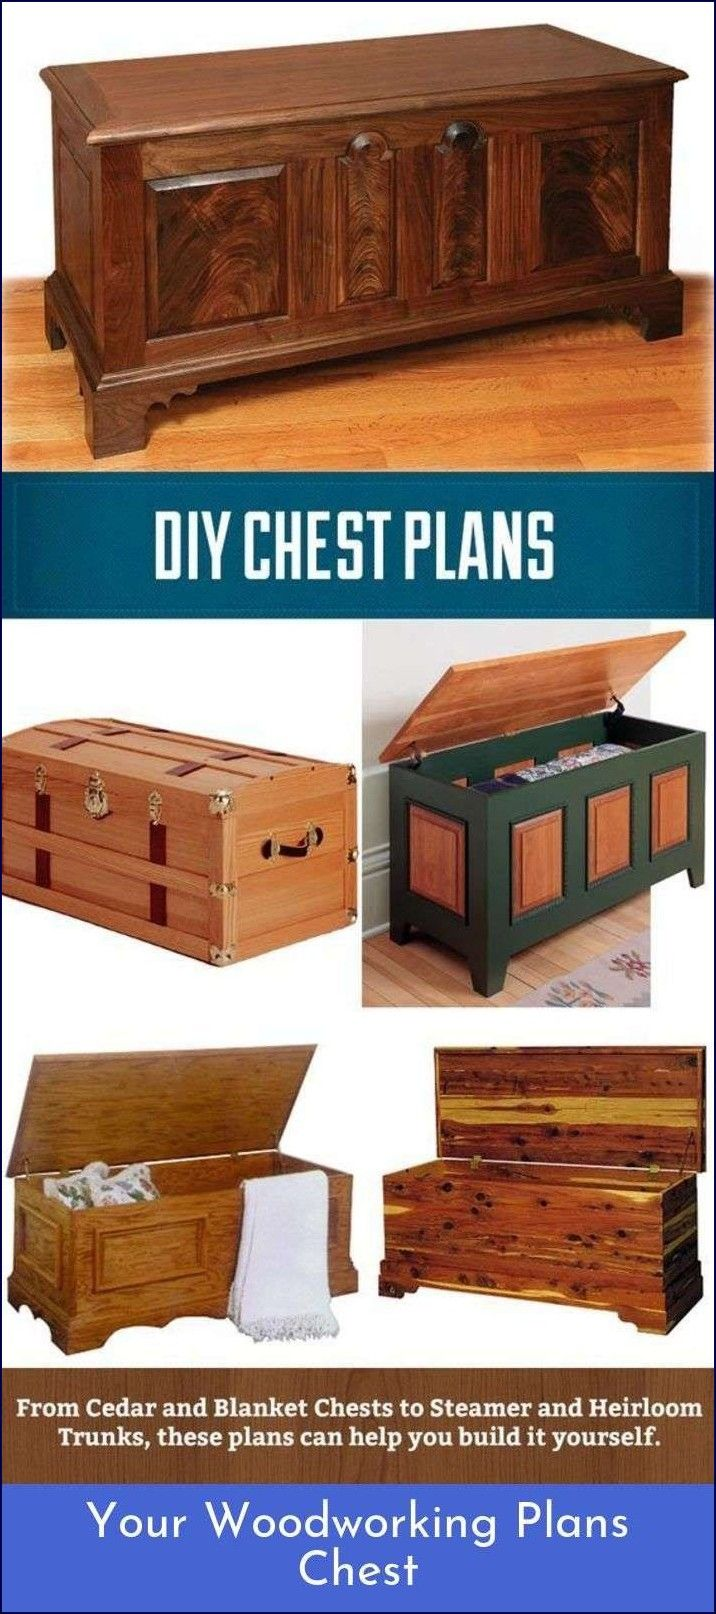 get great deals of totally free woodworking plans. perfect newbie